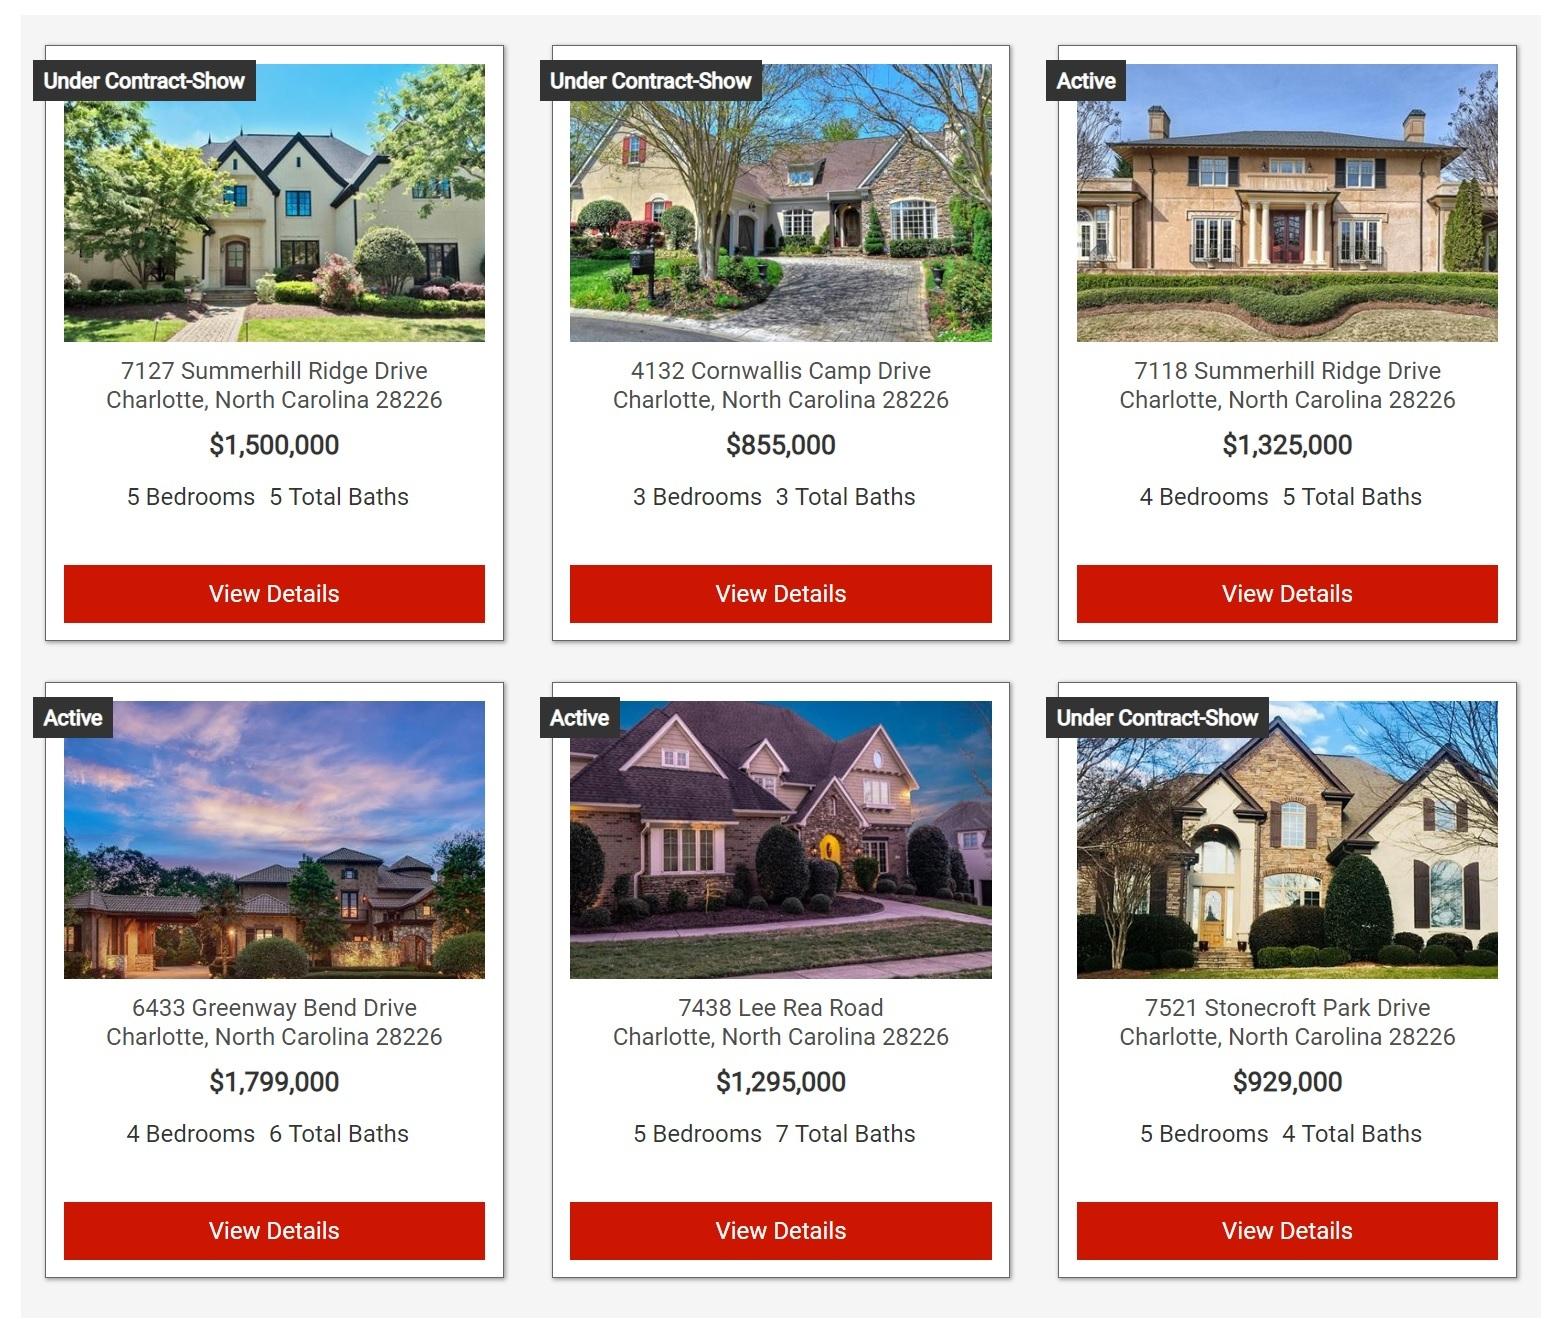 Search homes for sale in Charlotte's Stonecroft